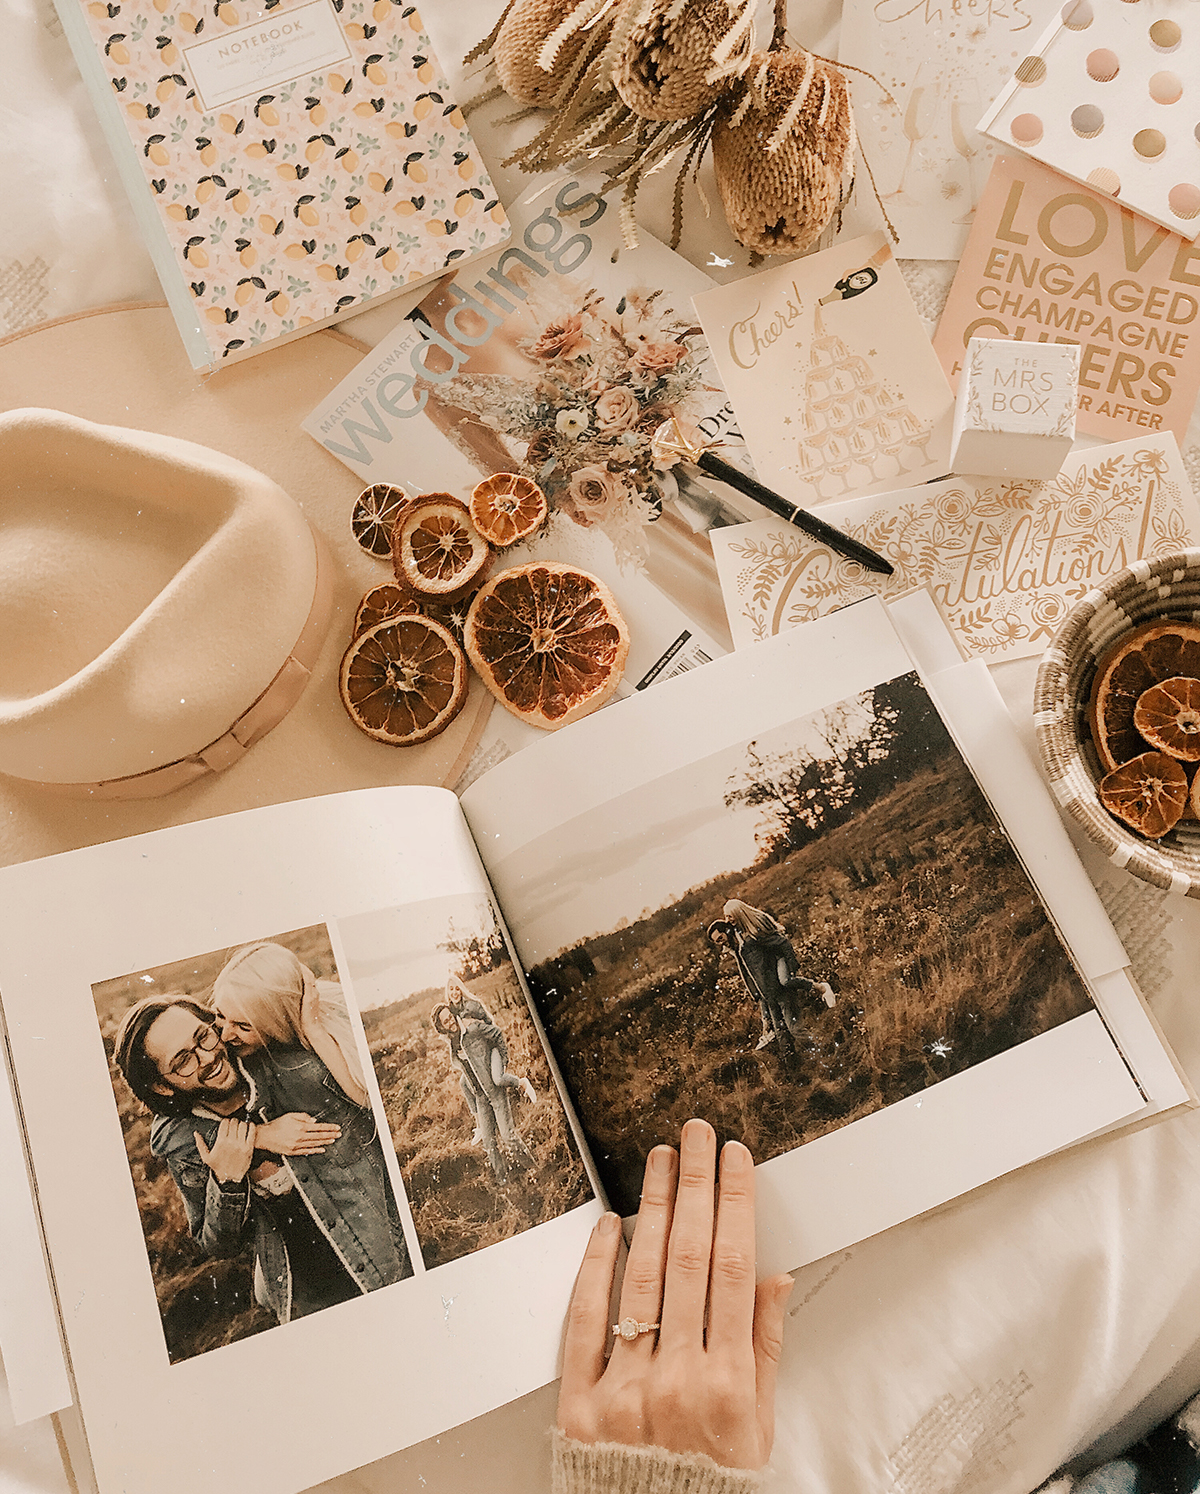 Artifact Uprising Hardcover Photo Book opened to engagement photos on table covered with wedding stationery and planning materials